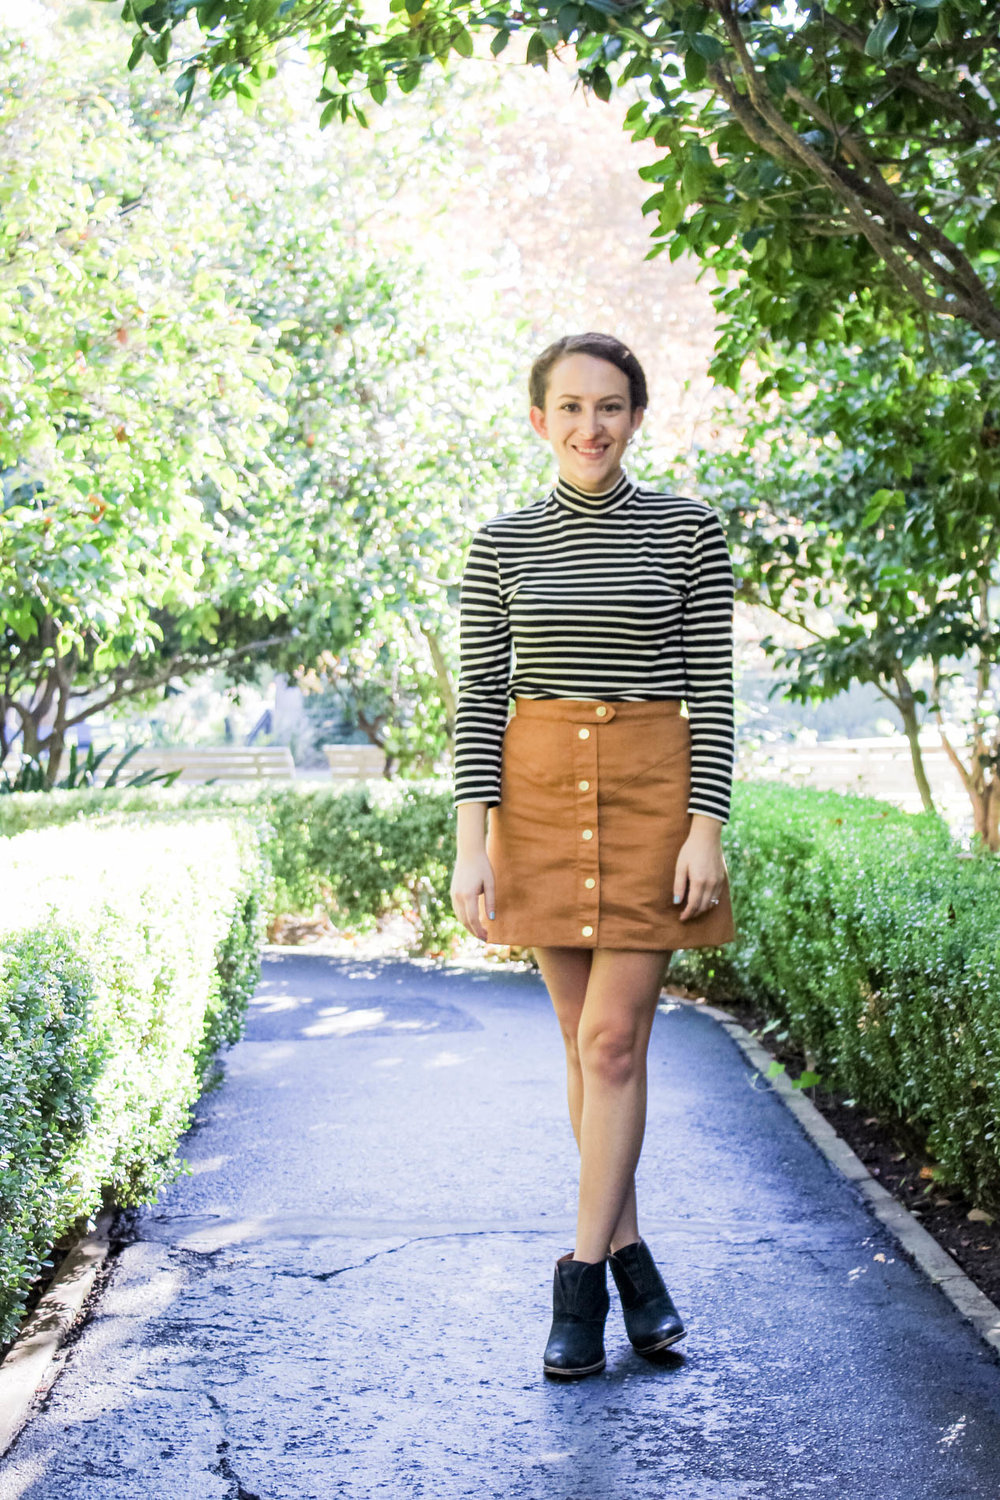 Stripe mockneck top and cognac colored button front skirt outfit | fall capsule wardrobe | tintedgreenblog.com